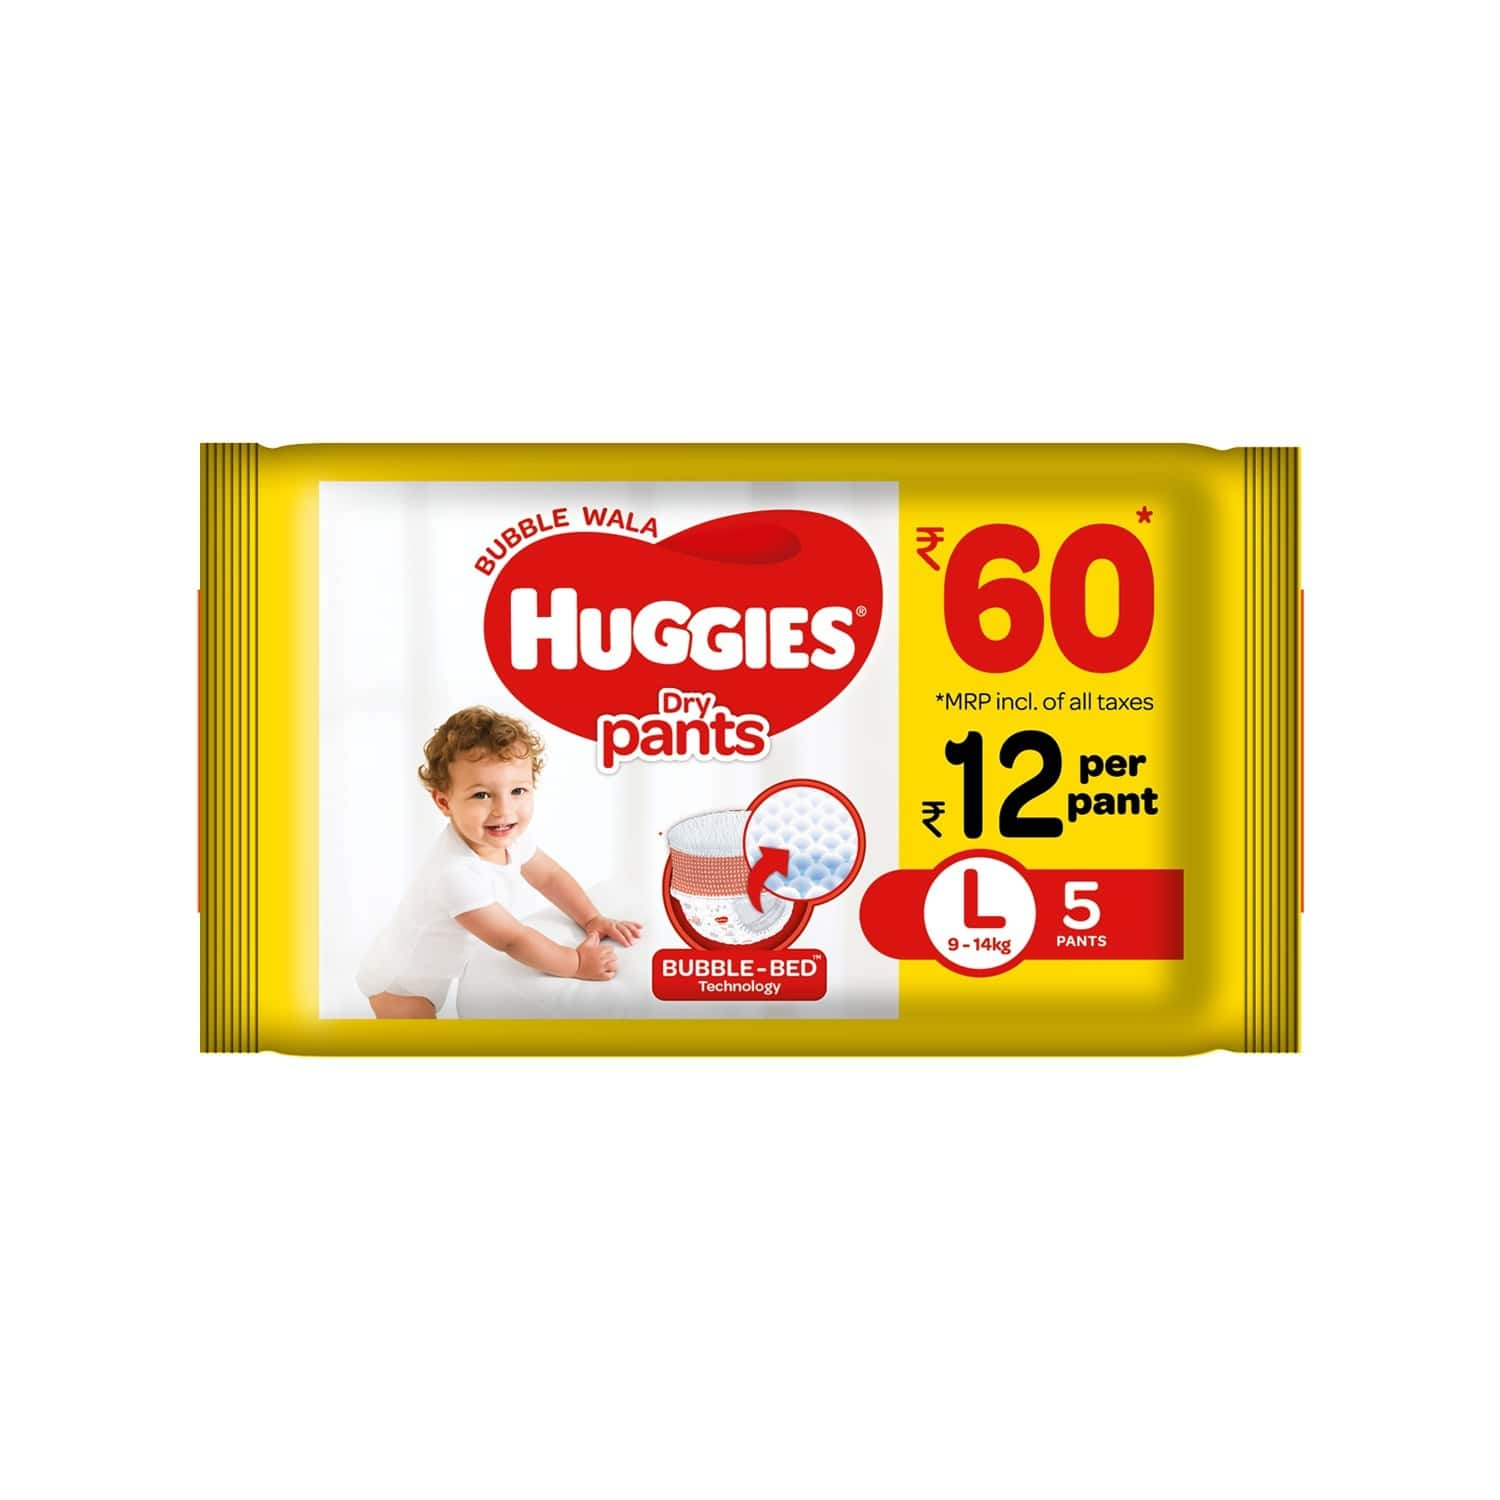 Huggies Dry Pants Diapers ( Large Size) - 5 Count